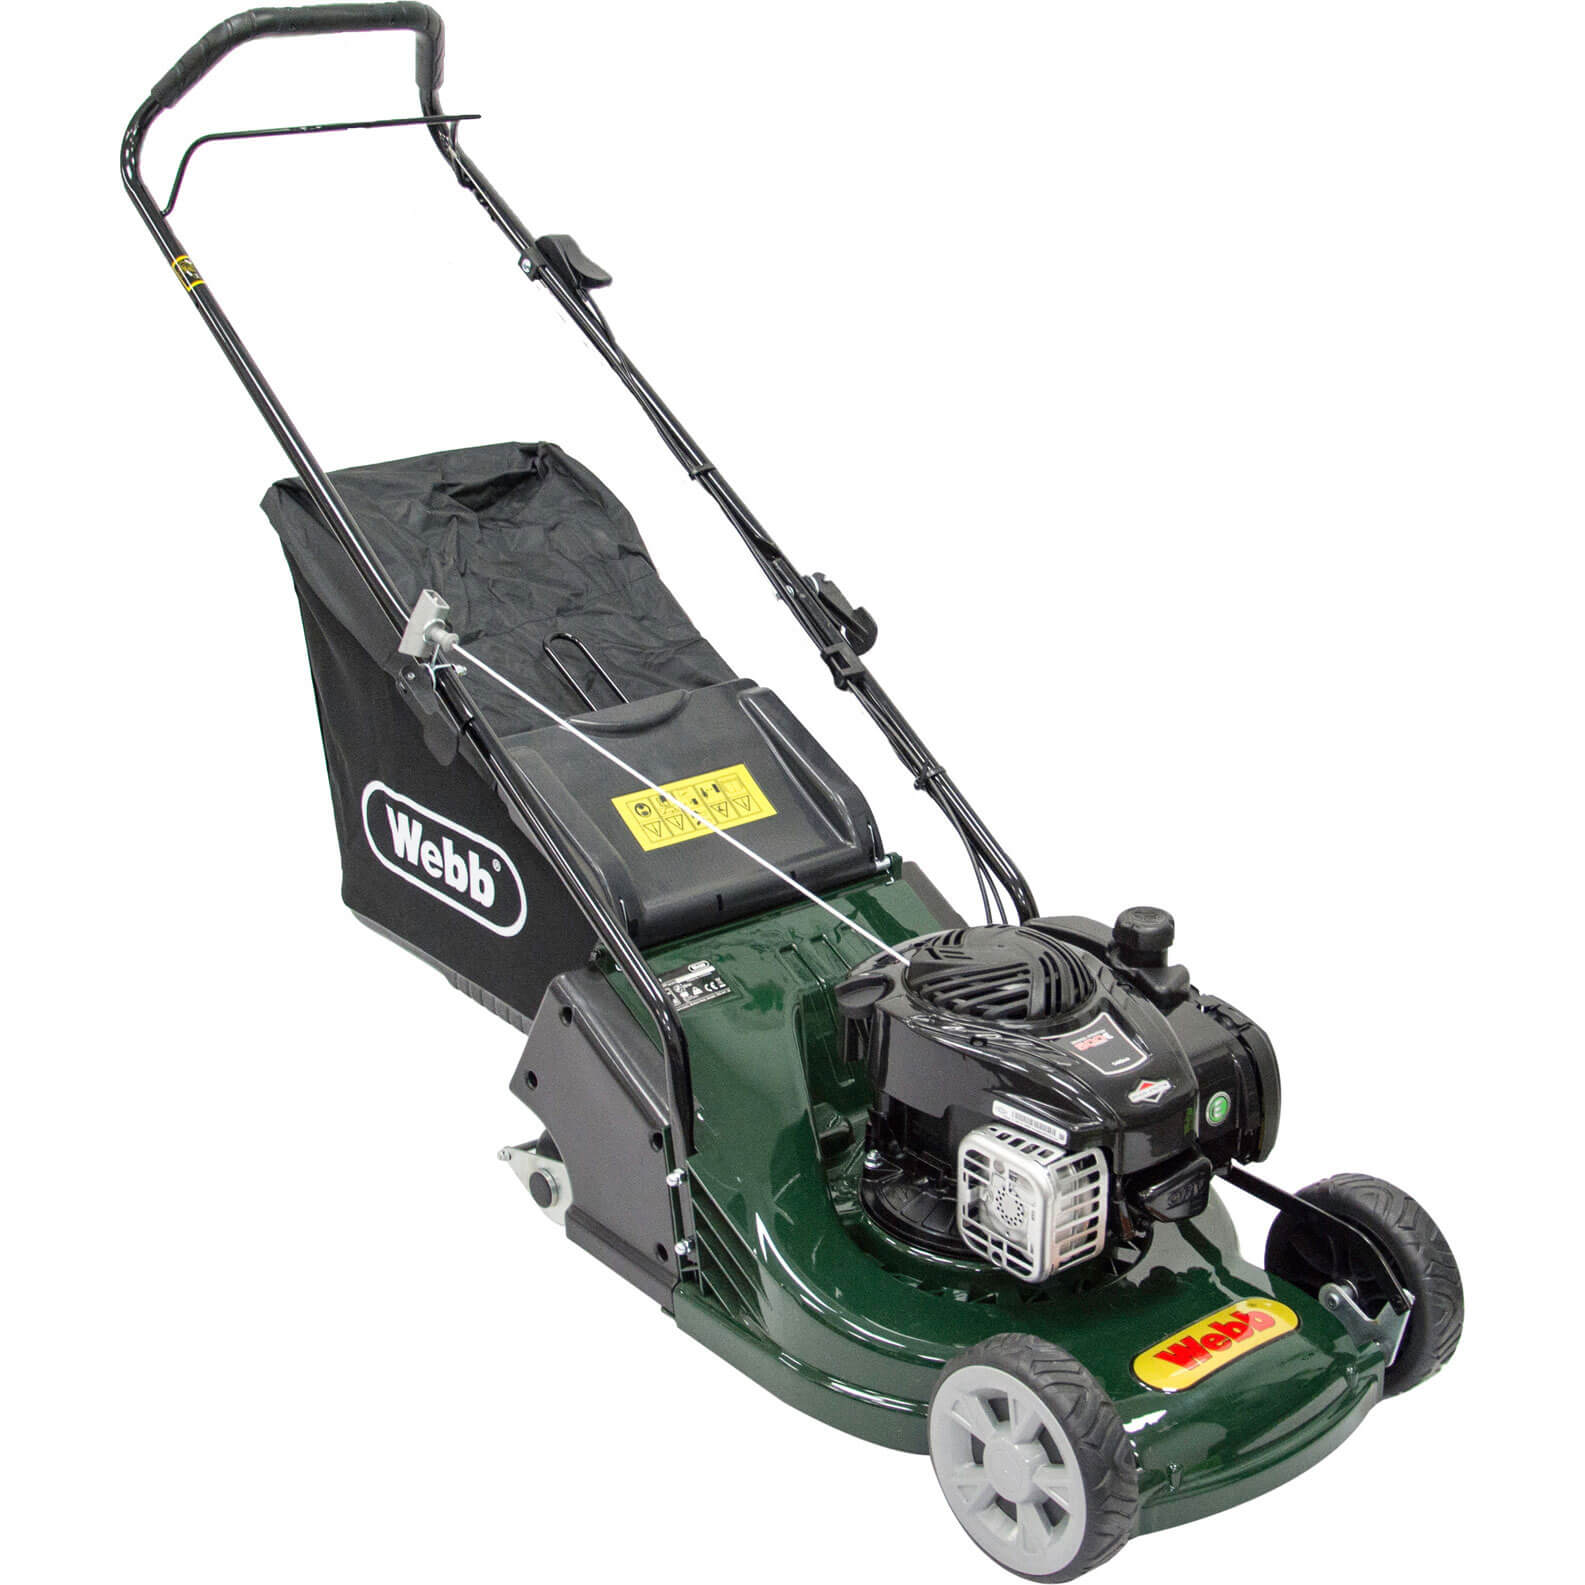 Webb WERR17P Push Petrol Rotary Lawnmower 425mm